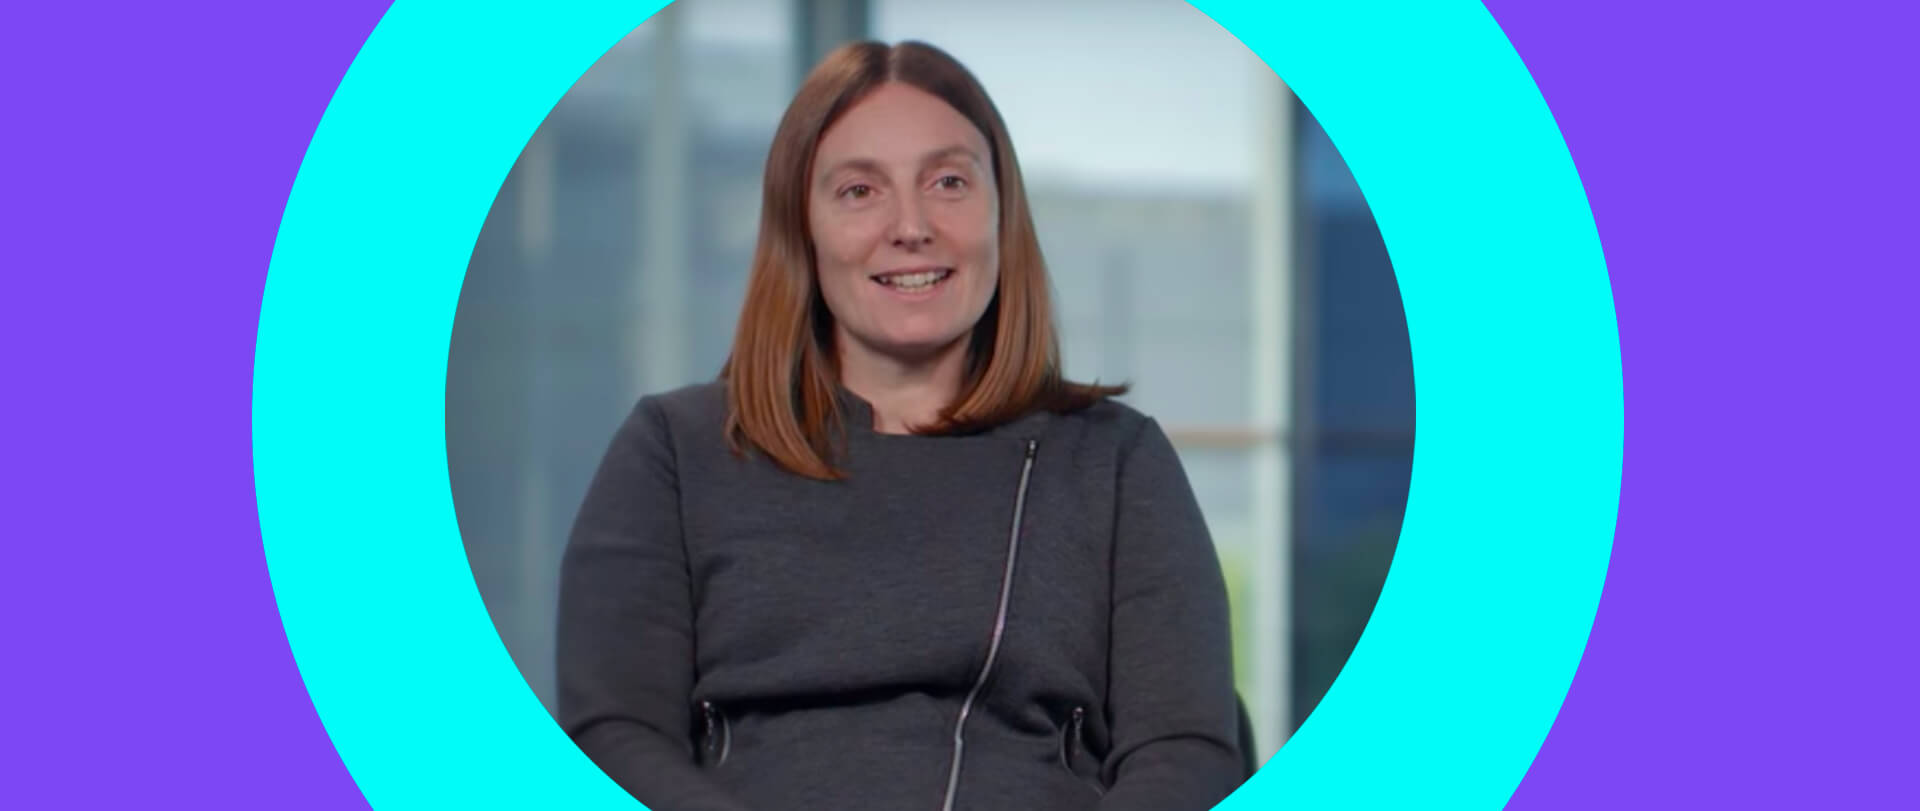 Meet Debbie, It Took Her Only 8 Months to Become a Front-End Architect